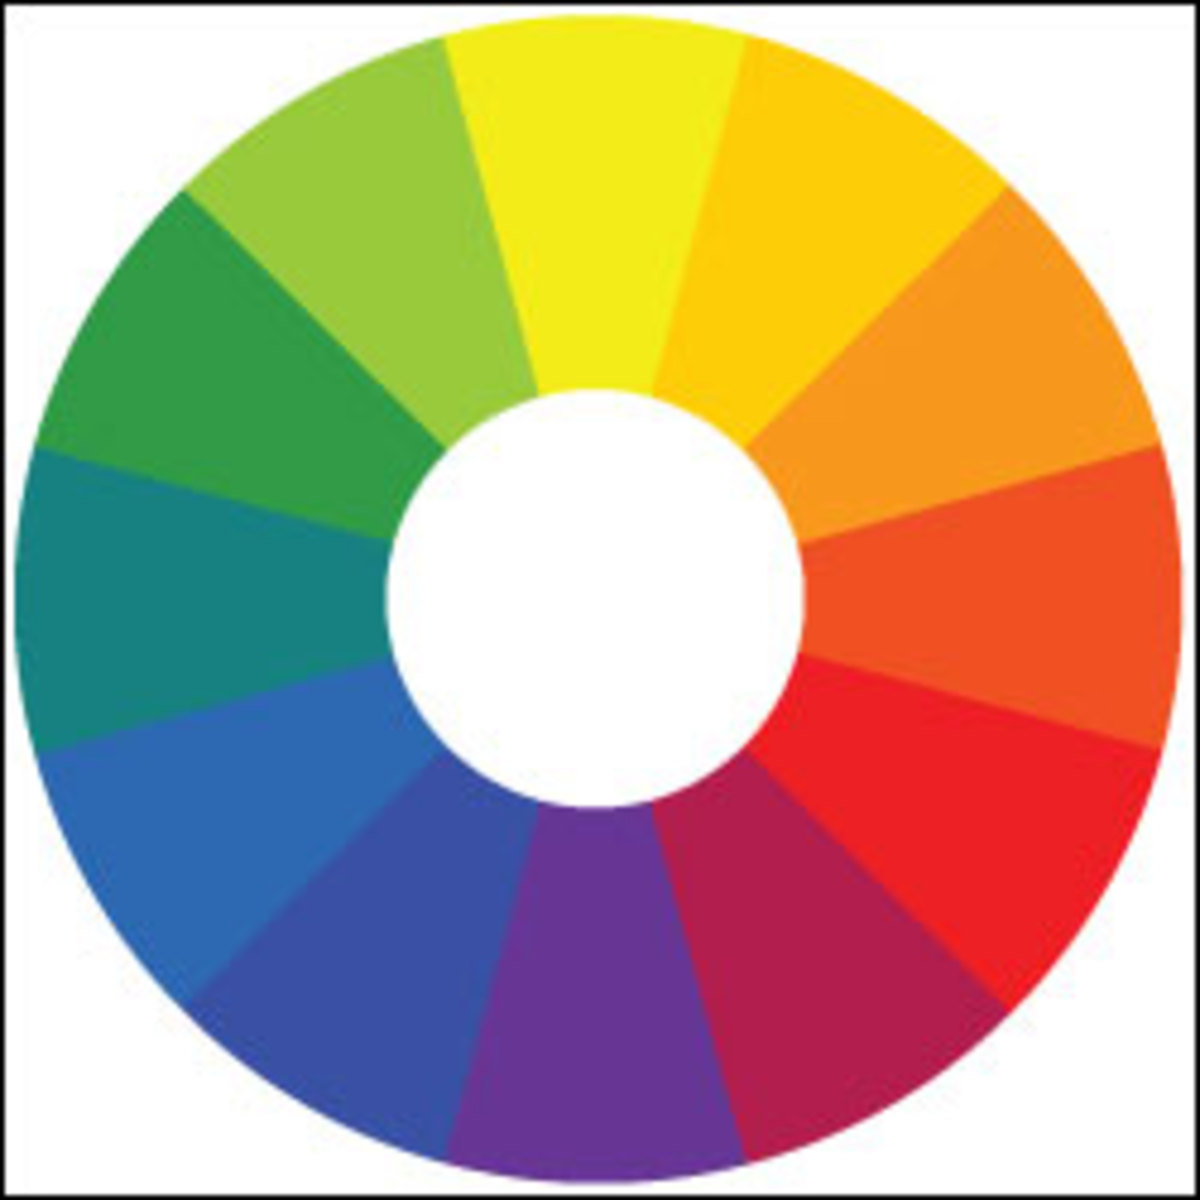 How colors affect mood, emotions and life when decorating your home...